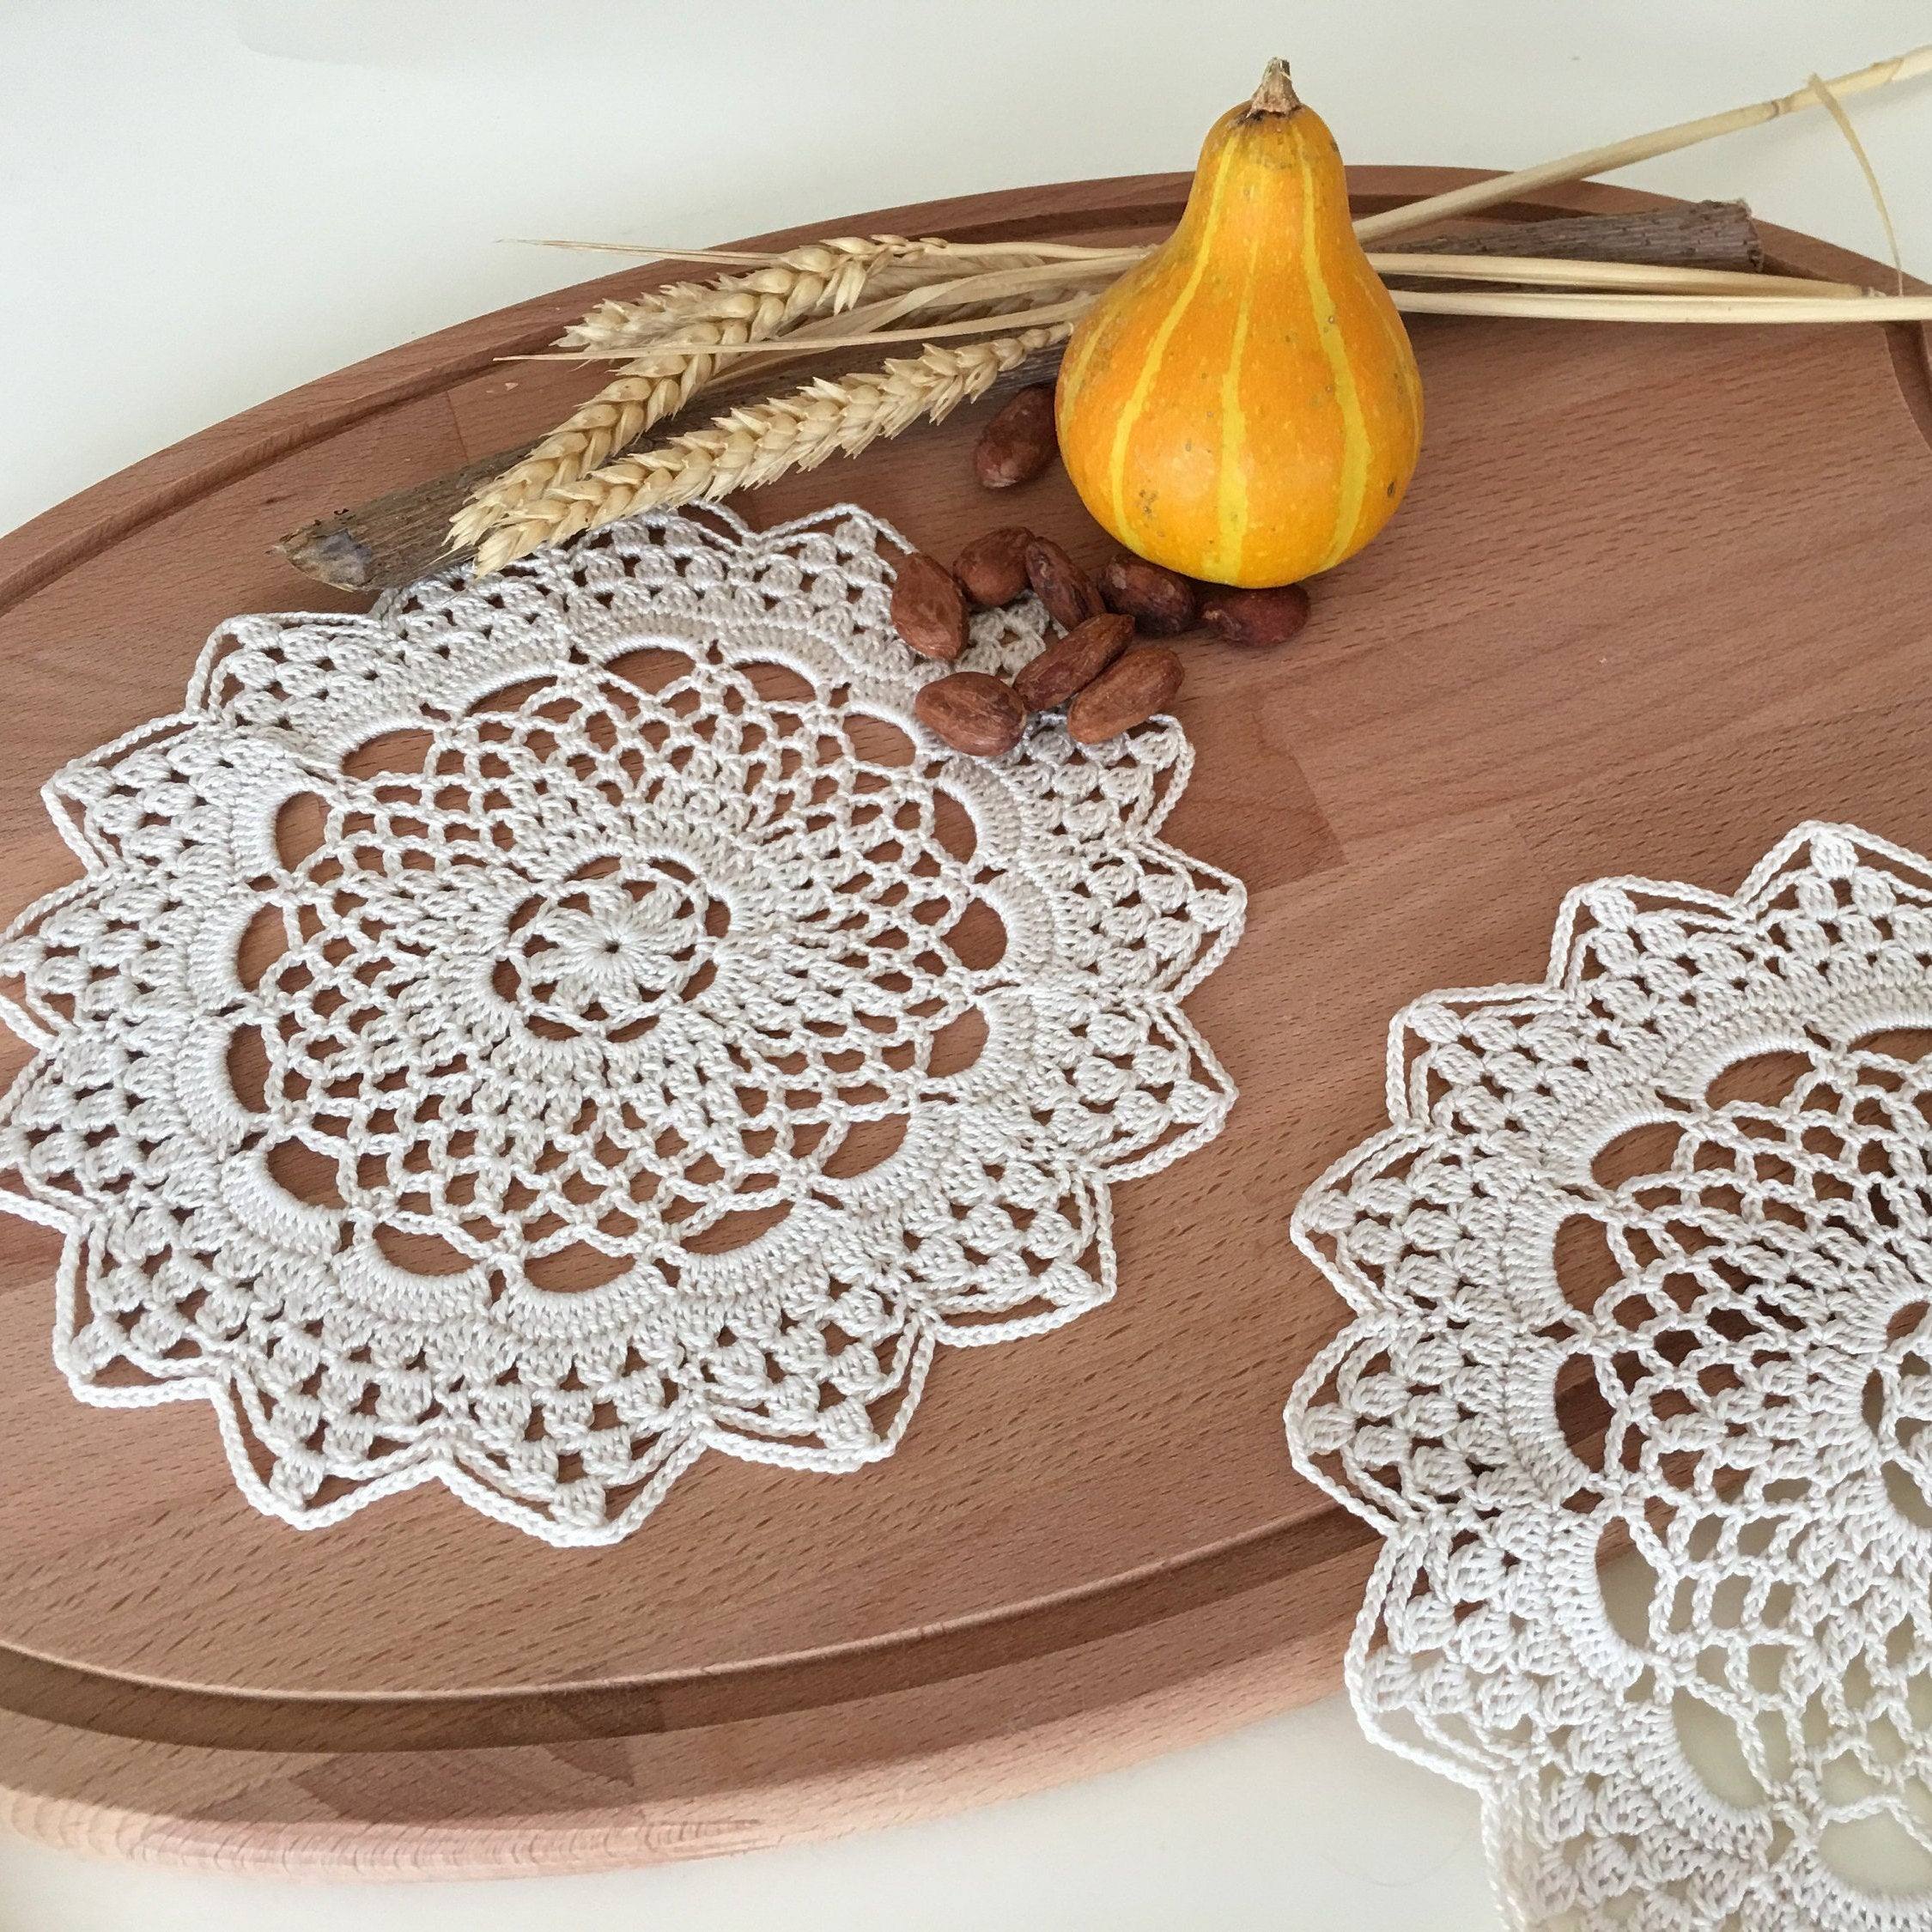 3 Pretty Designs of Craft Paper Doilies Rustic Craft Art Doily Kitchen Farmhouse Restaurant Decor Etsy